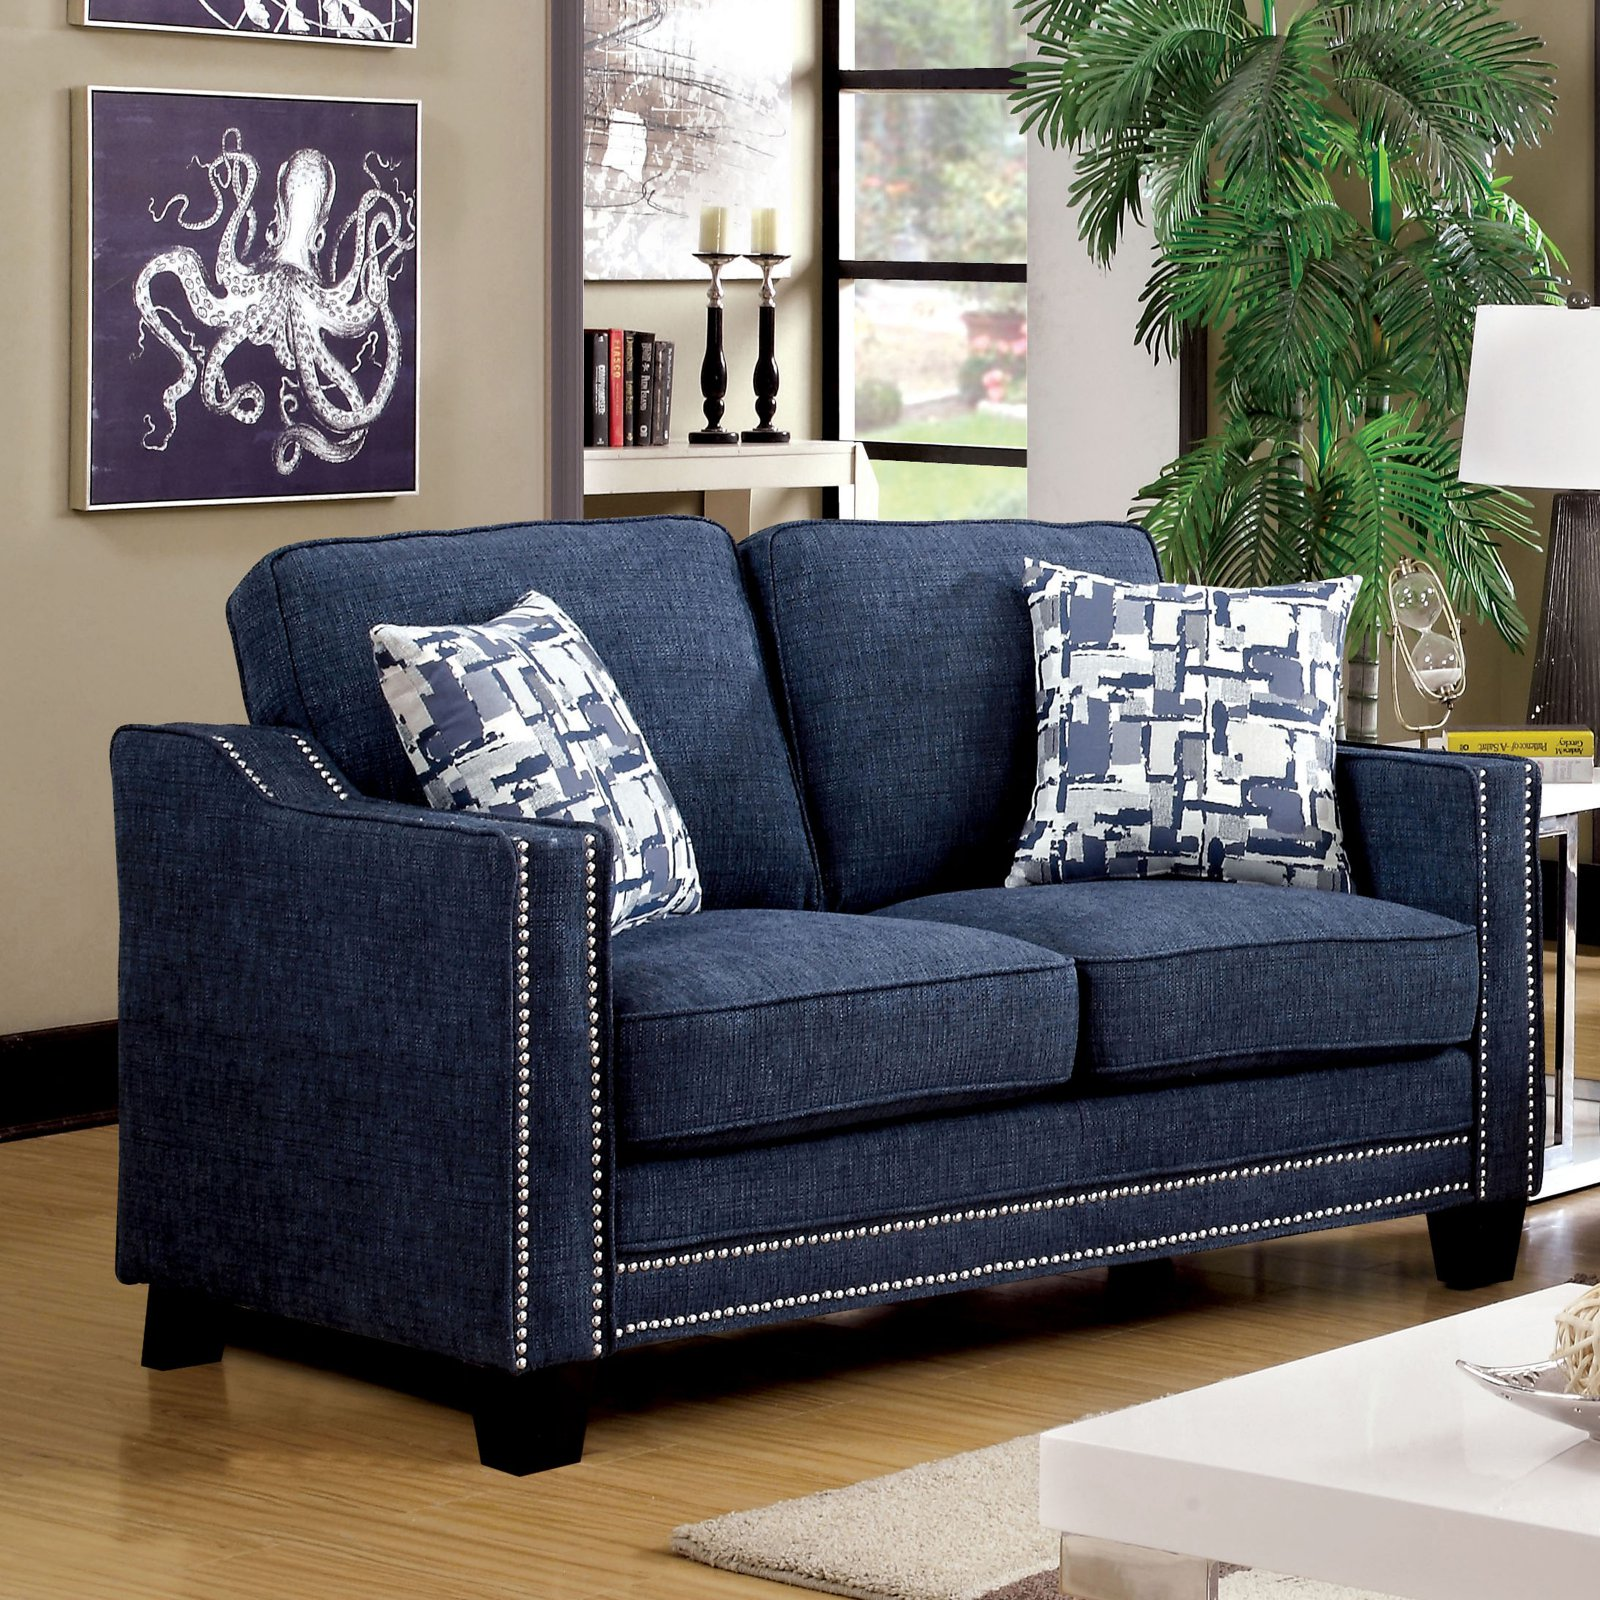 Furniture of America Polin Studded Chenille Loveseat with Pillows